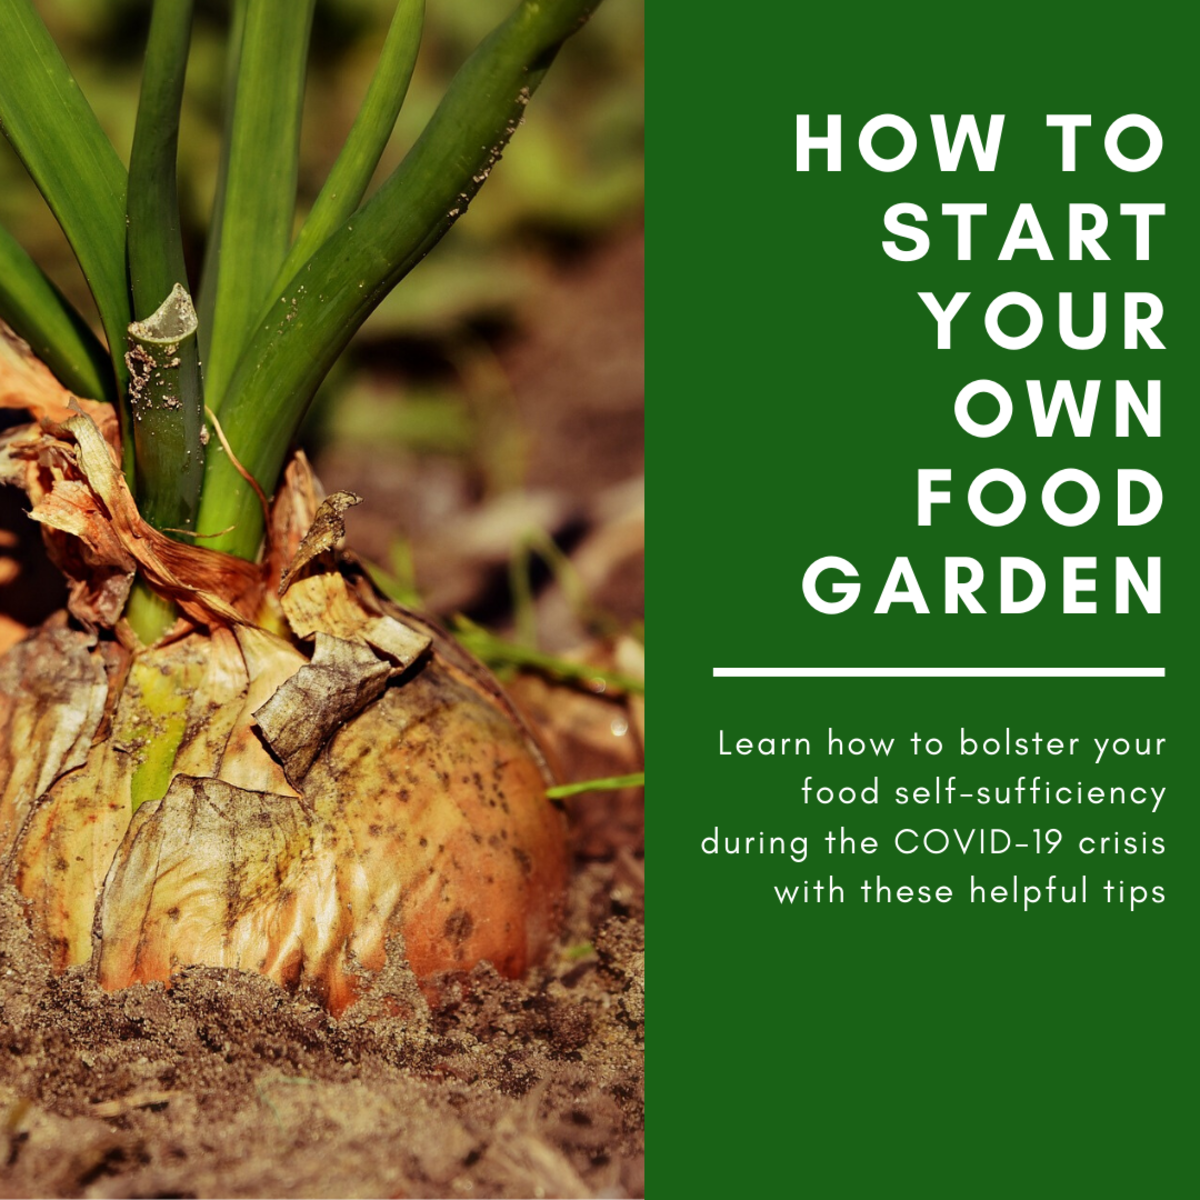 How to Grow an Emergency Garden During the COVID-19 Crisis